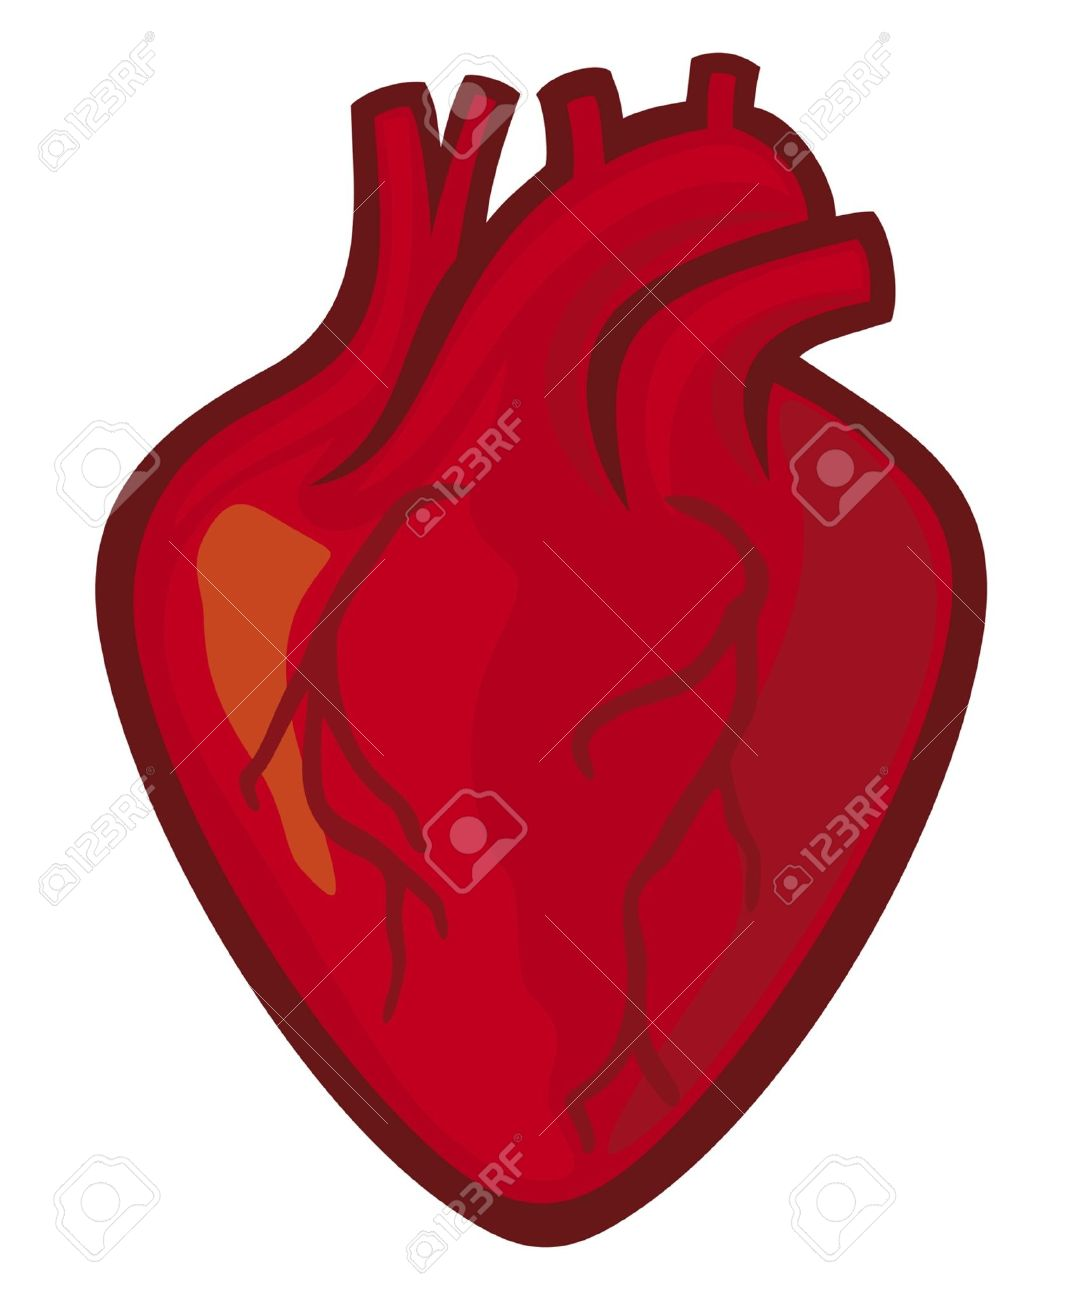 1082x1300 Rate Clipart Human Heart